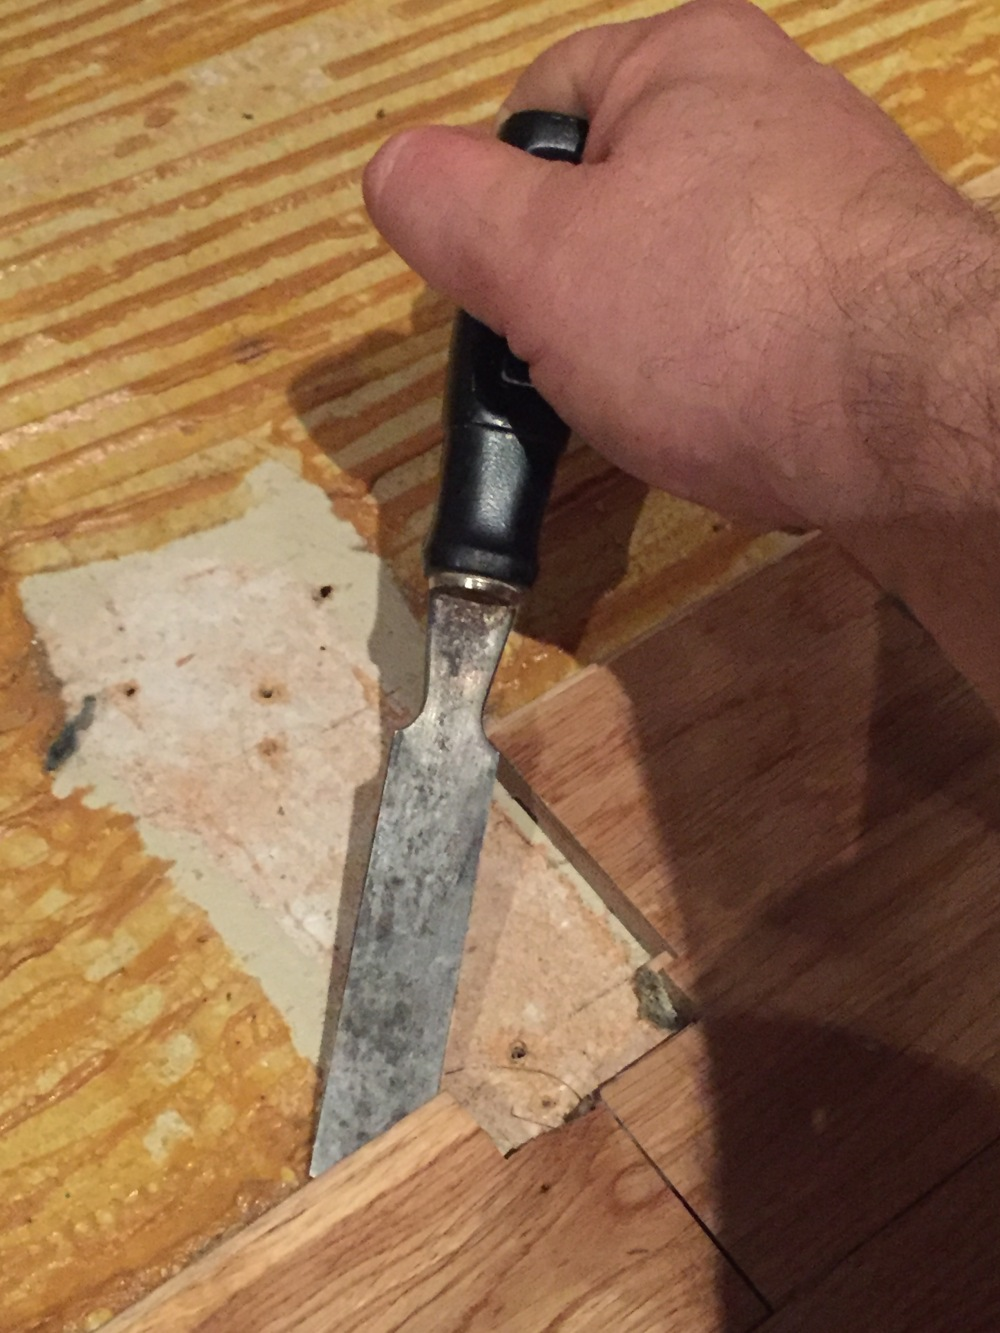 I Used a Wedge to Pry Up the Old Floor Boards